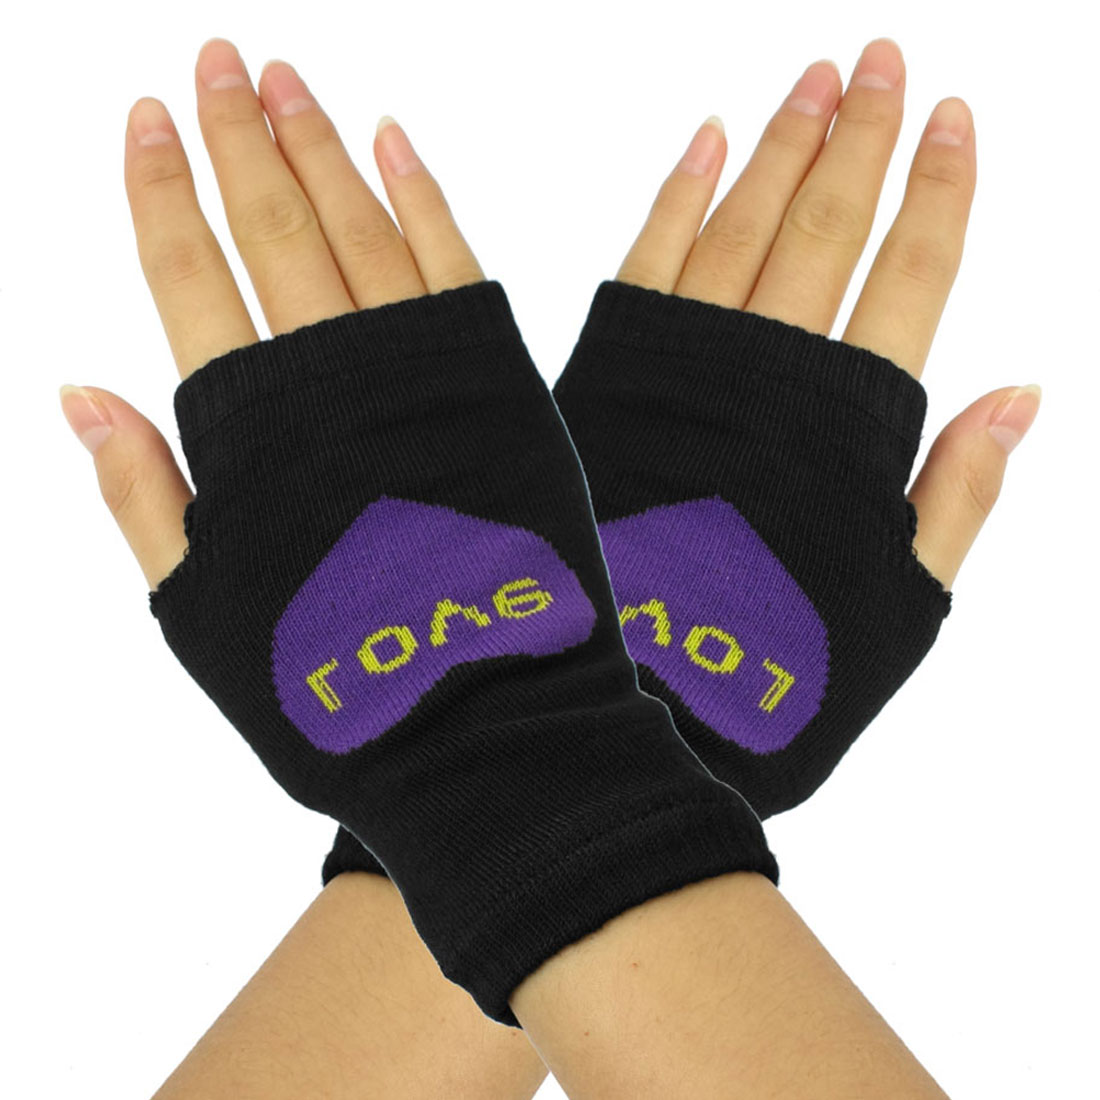 Ladies Purple Heart Print Fingerless Mitten Knit Elastic Gloves Pair Black